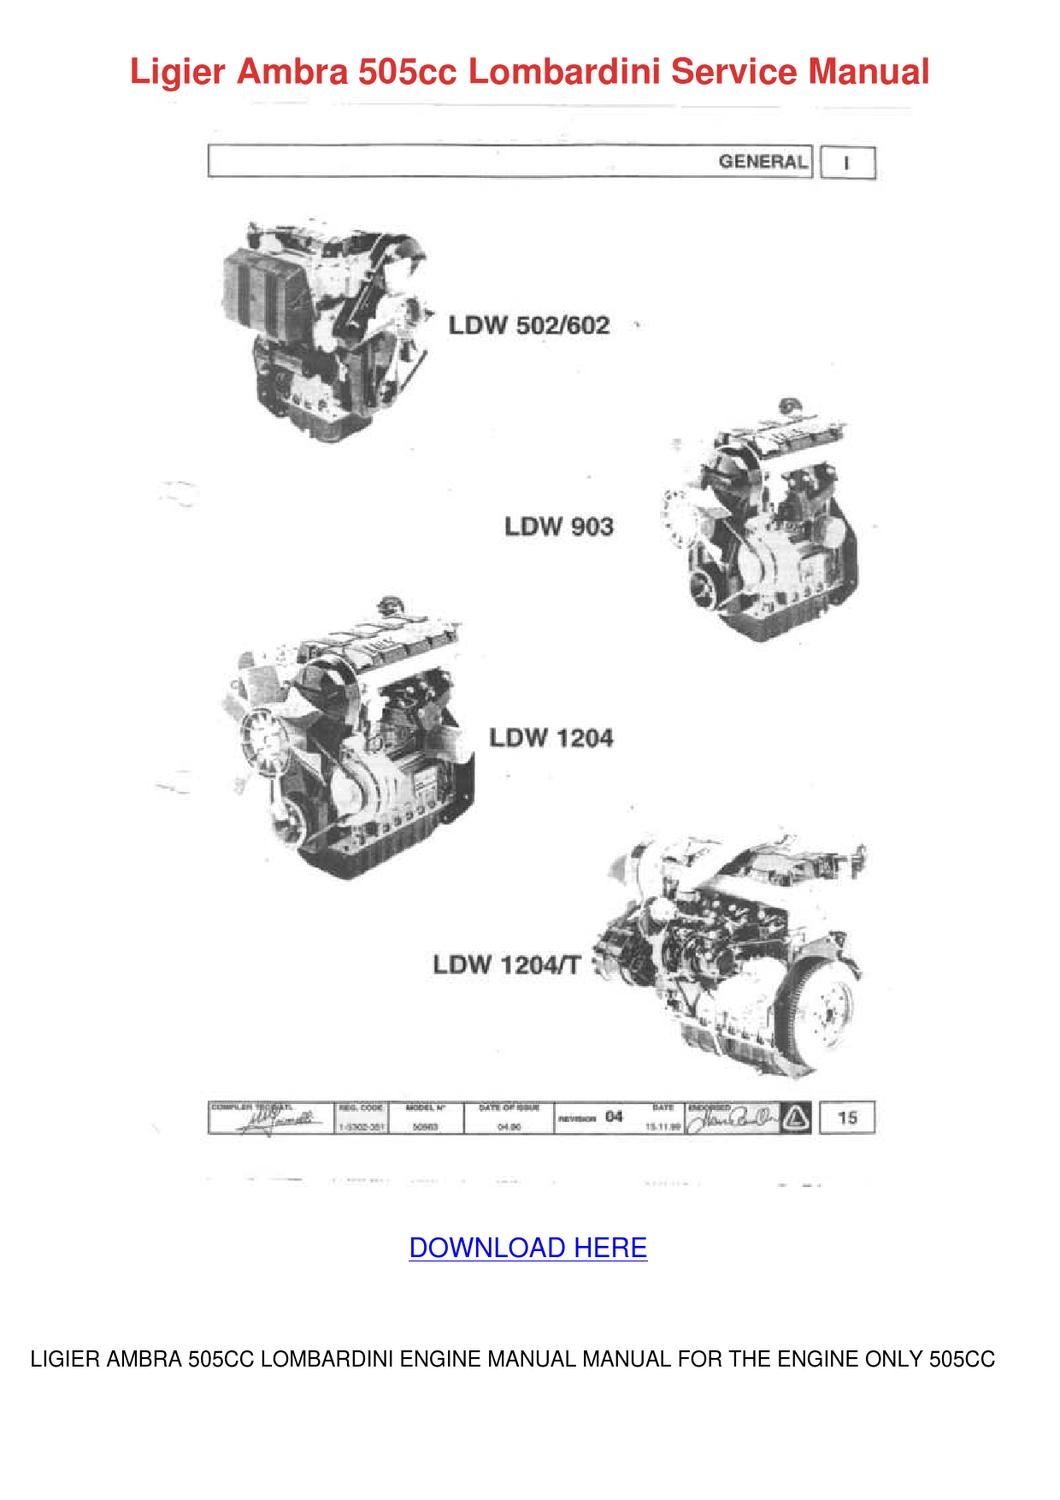 Lombardini 12ld477 2 Series Engine Workshop Service Repair